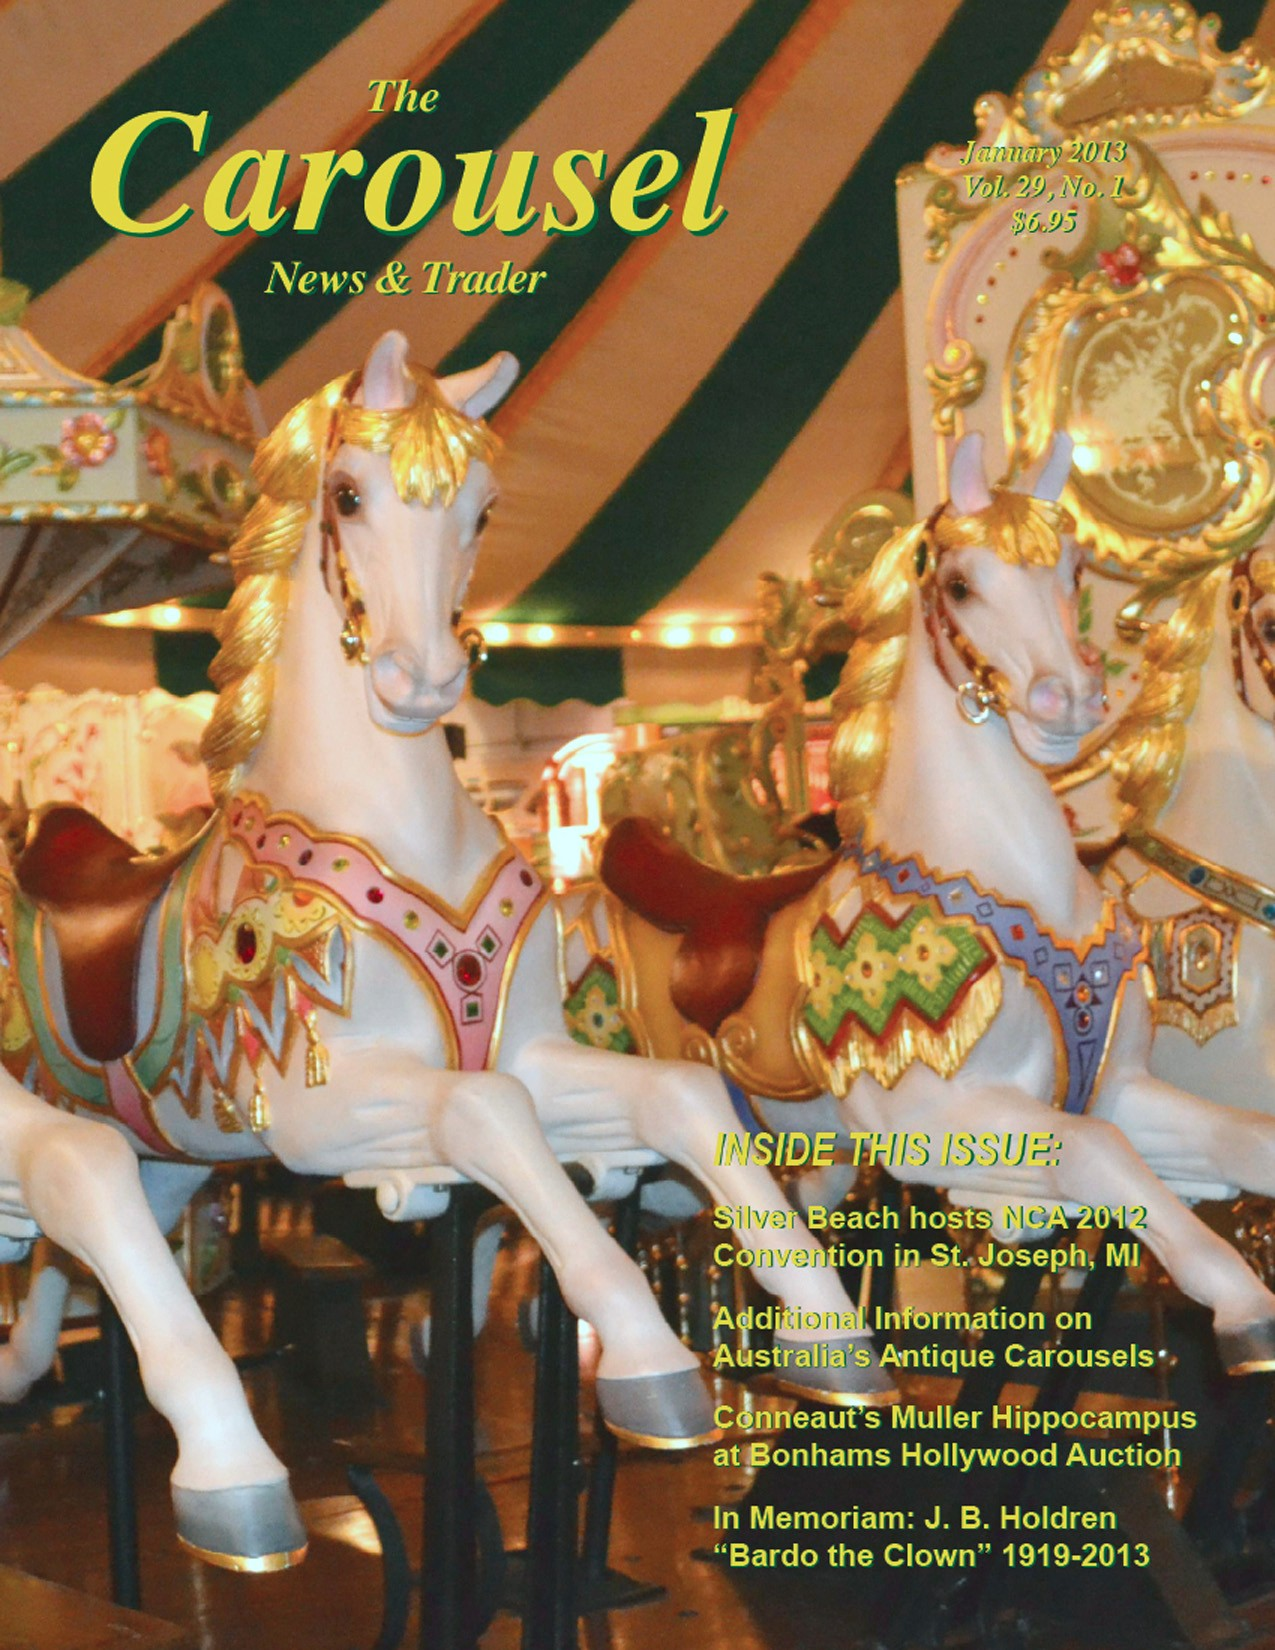 Carousel-news-cover-1-Eden-Palais-salon-carousel-January-2013